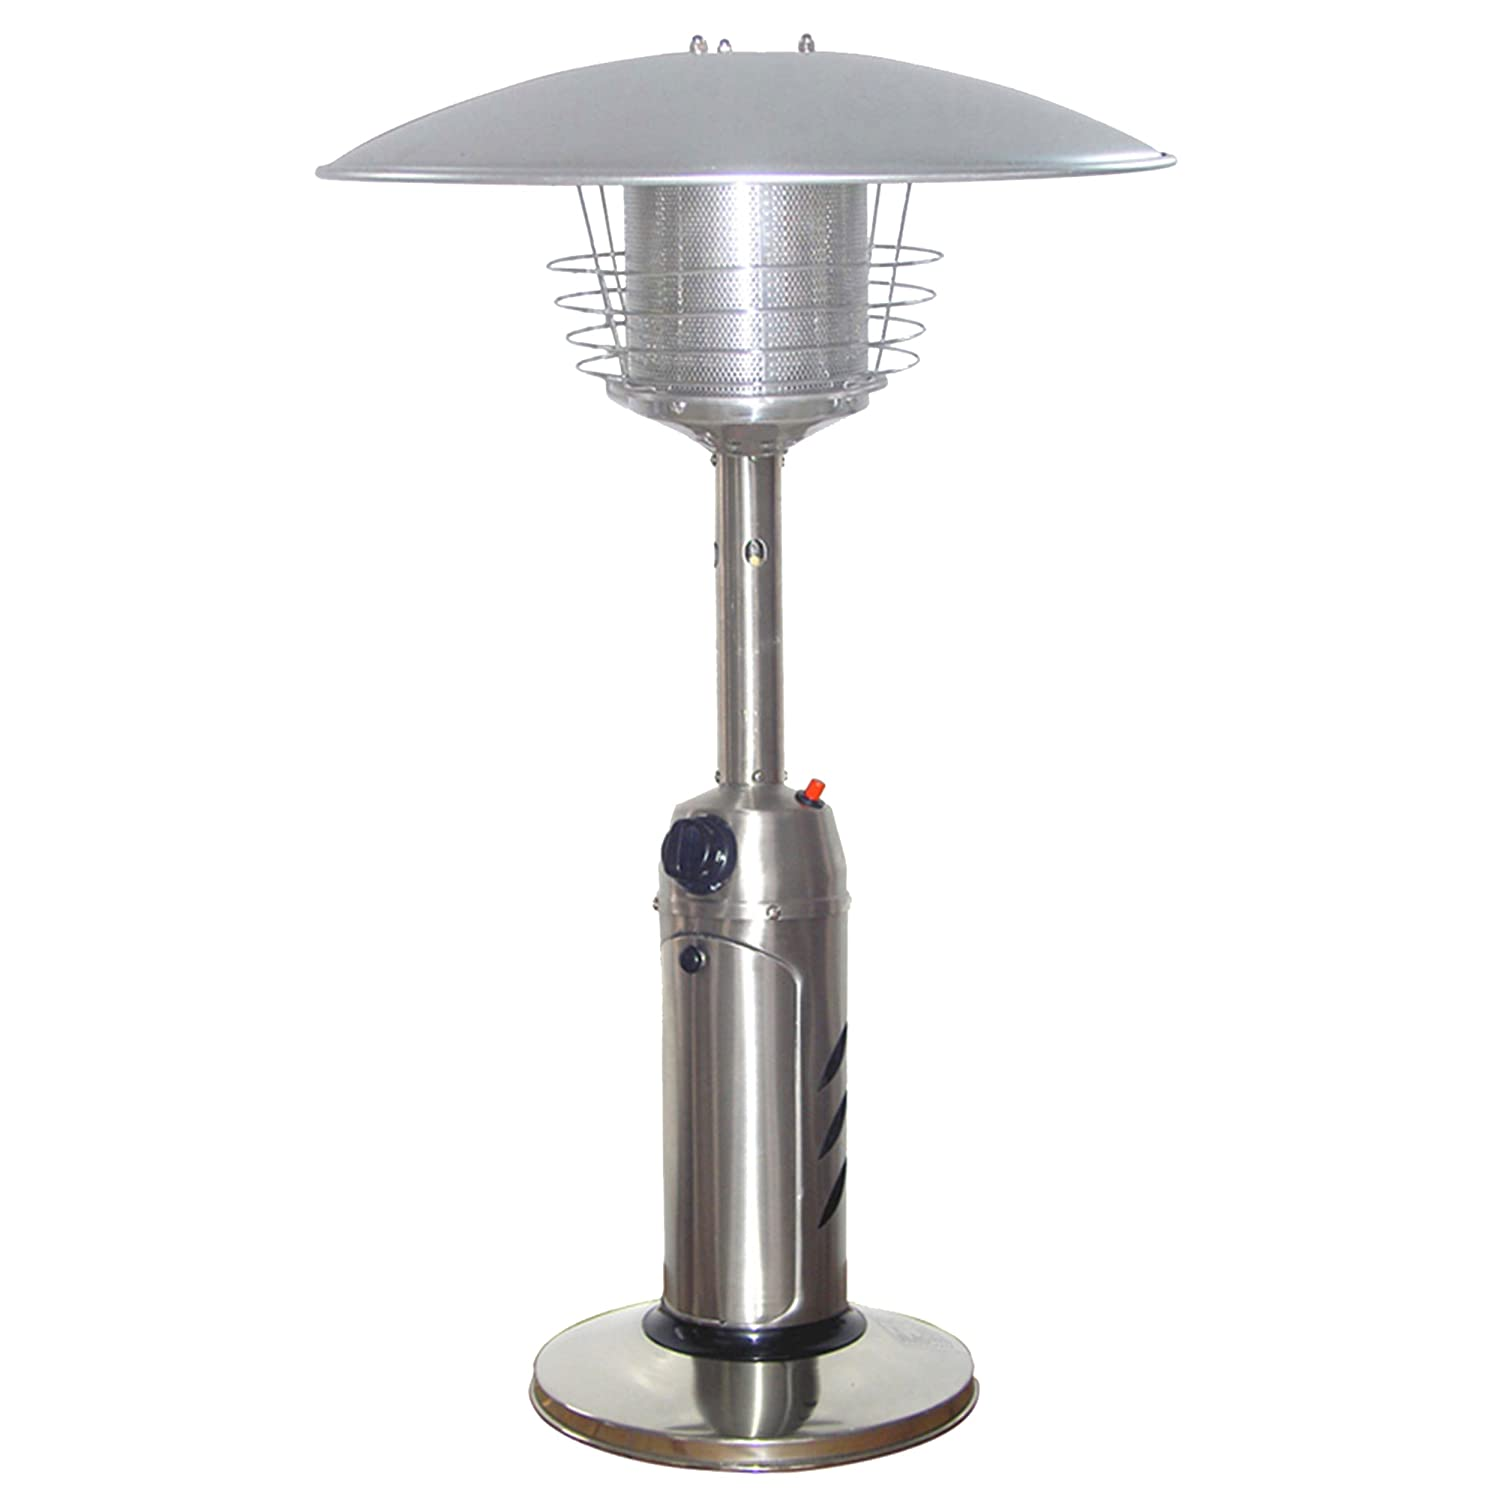 AZ Patio Heaters HLDS032-B Portable Table Top Stainless Steel Patio Heater - Amazon.com: Patio Heaters: Patio, Lawn & Garden